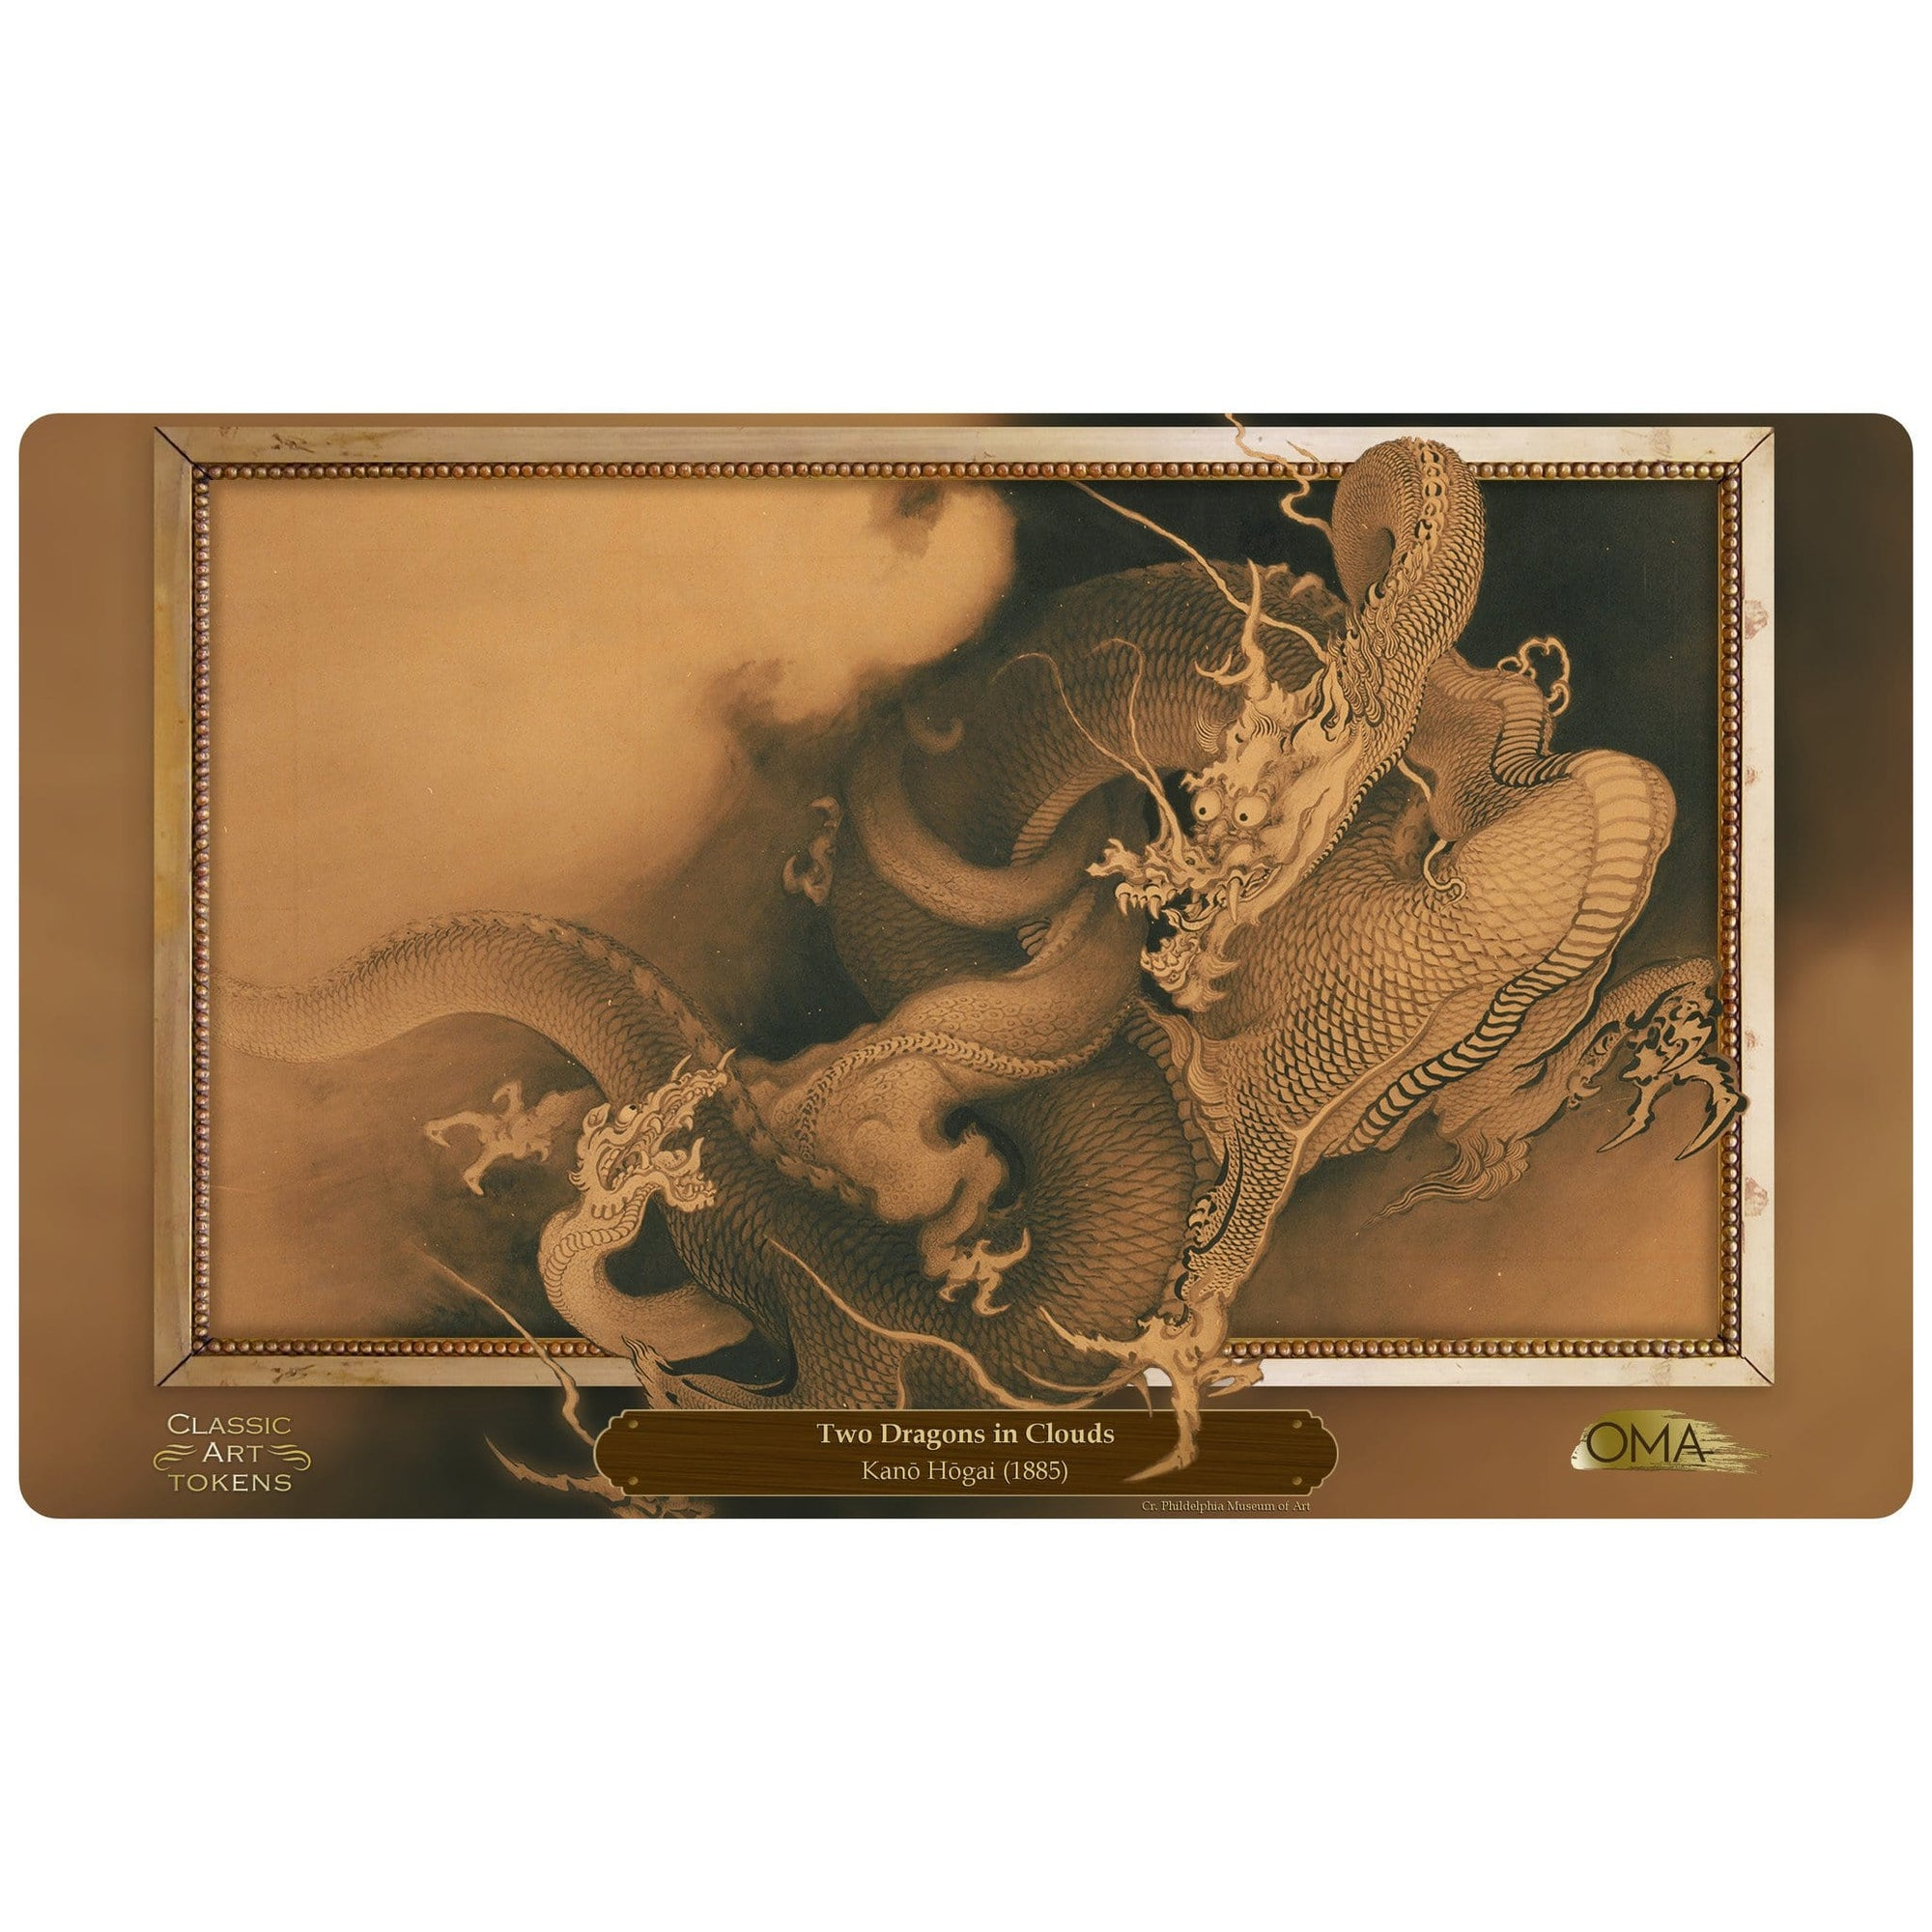 Dragon Playmat by Kanō Hōgai - Playmat - Original Magic Art - Accessories for Magic the Gathering and other card games